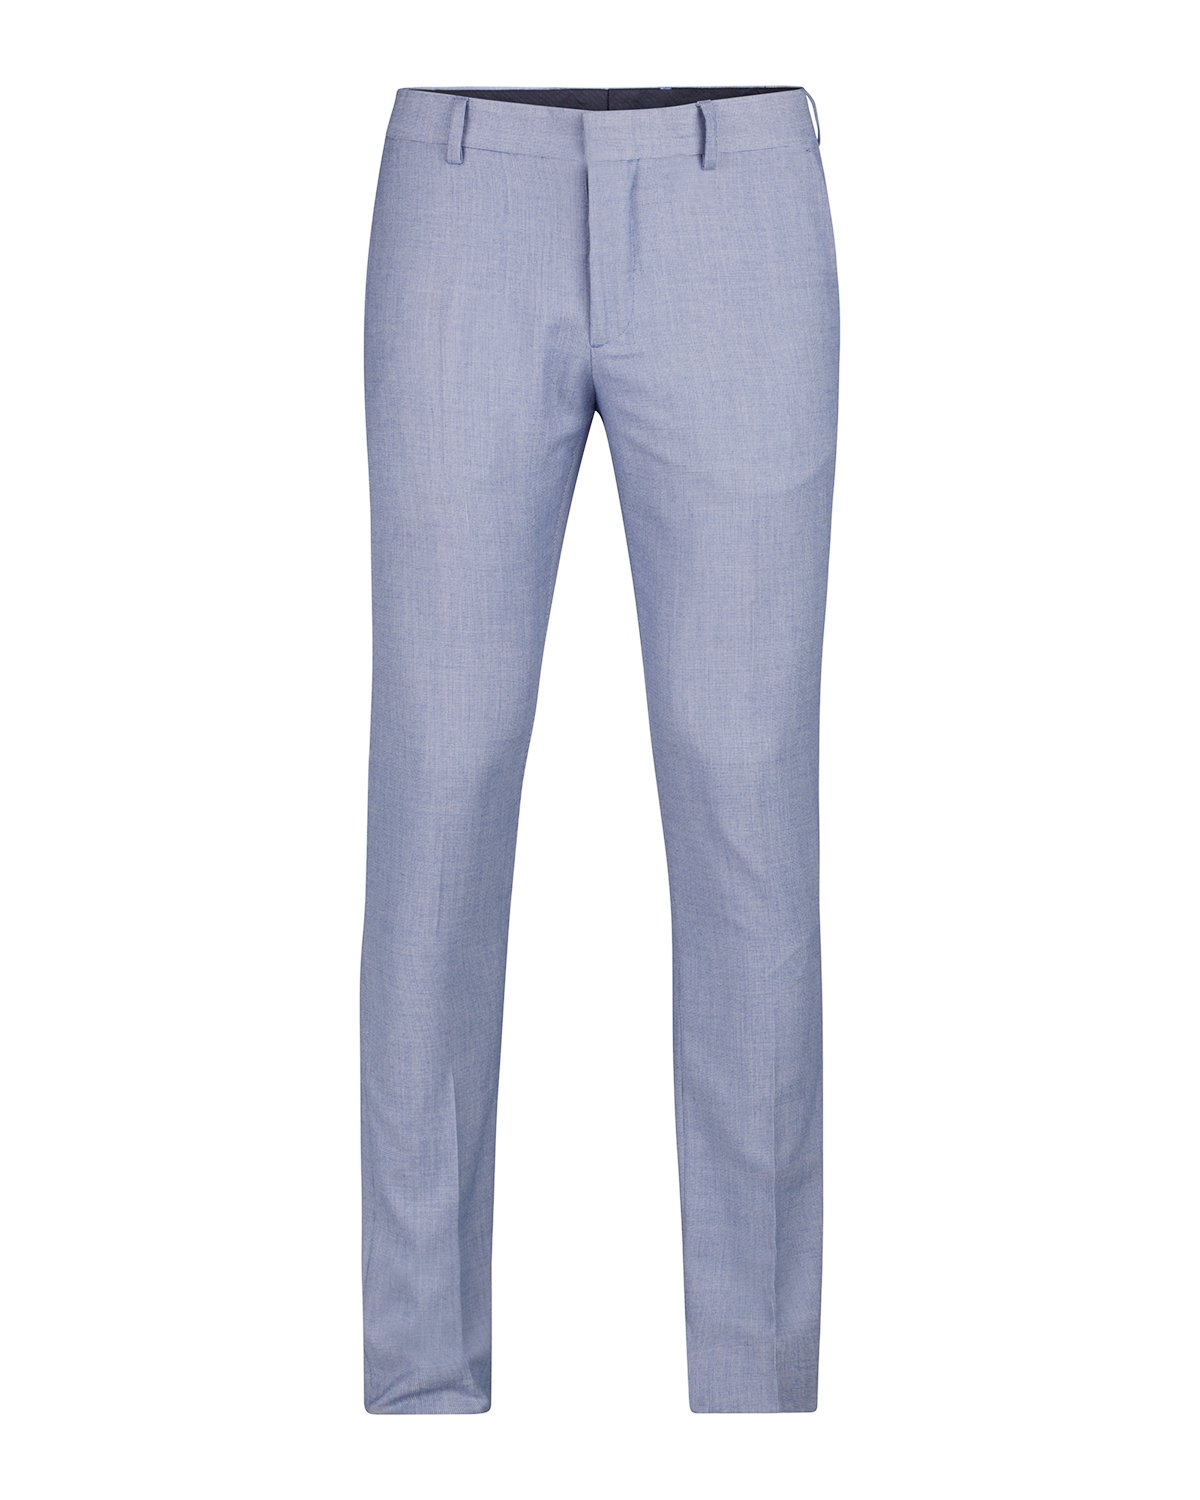 PANTALON SLIM FIT CARTER HOMME_PANTALON SLIM FIT CARTER HOMME, Bleu marine